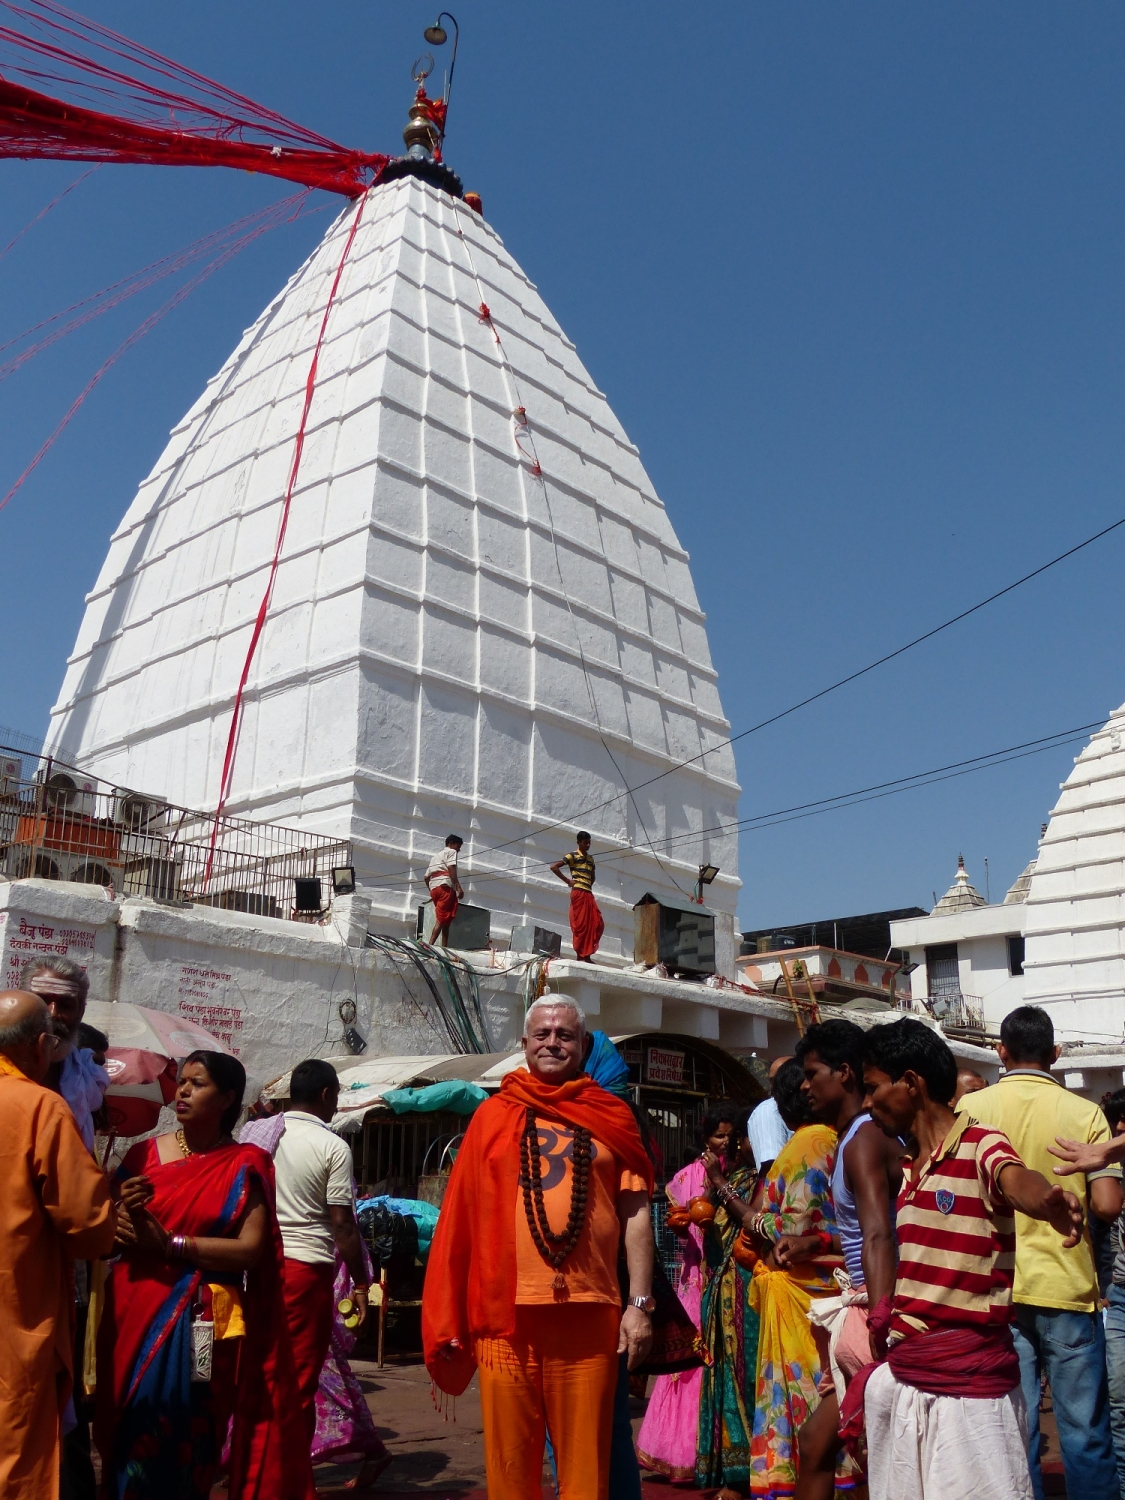 Jyotirlingam Vaidyanath, Dehogar, India - 2016, May